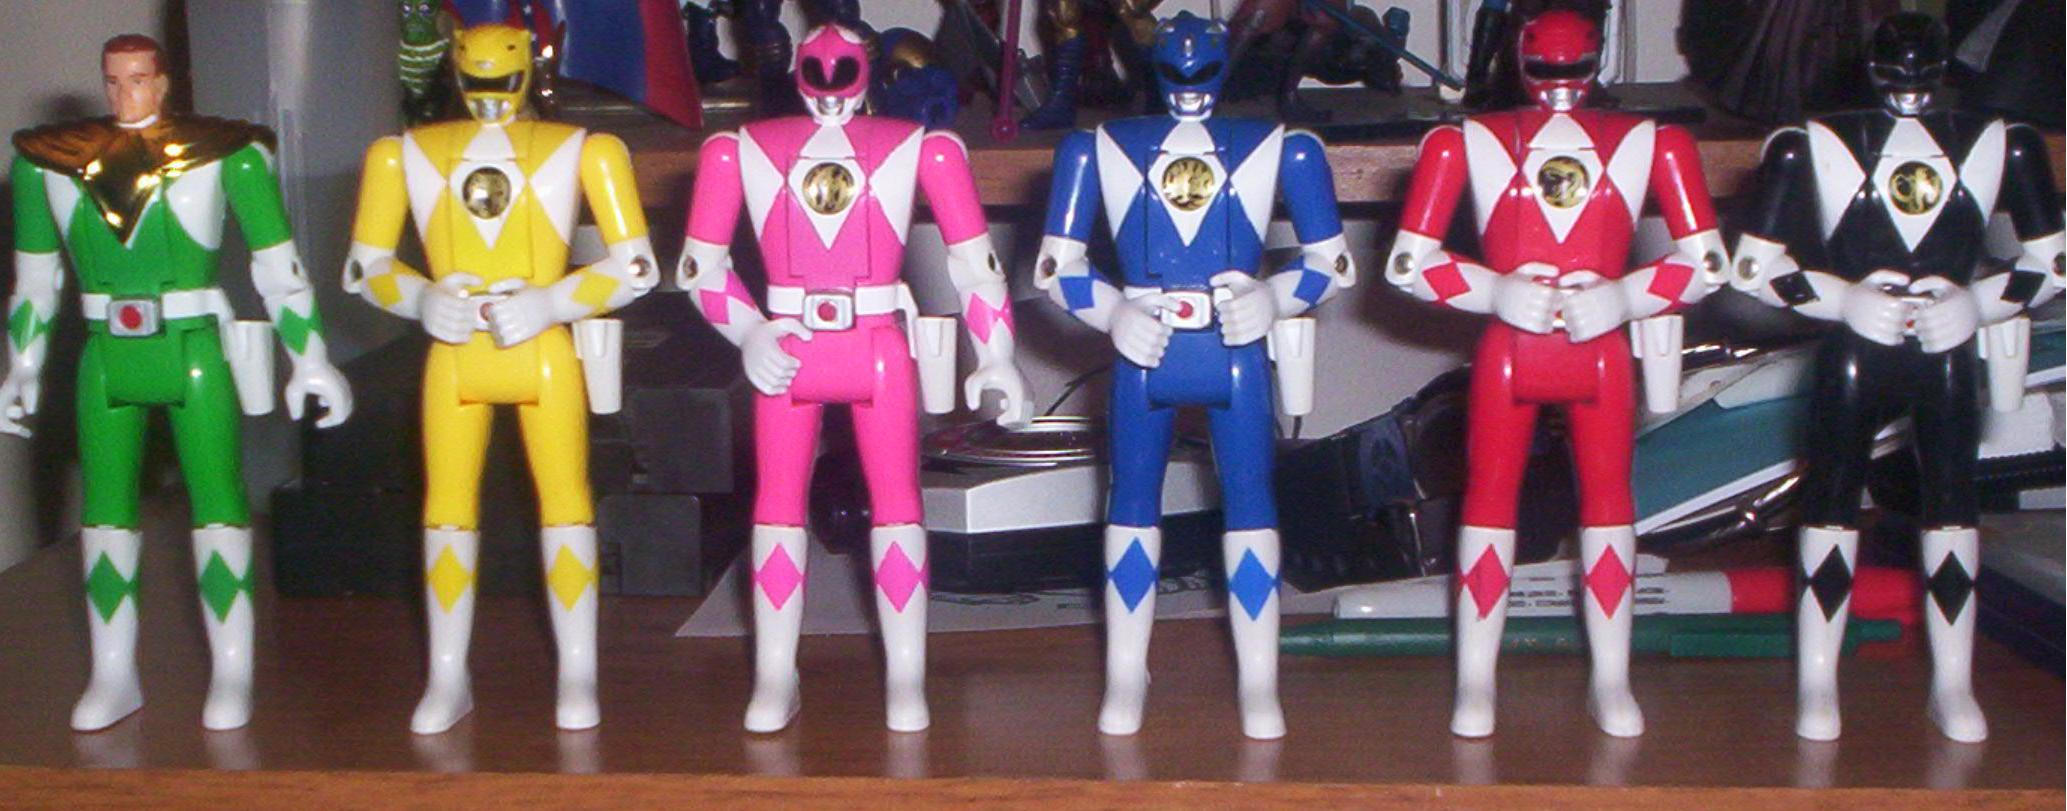 power_ranger_toys_2_by_razielleonhart.jpg